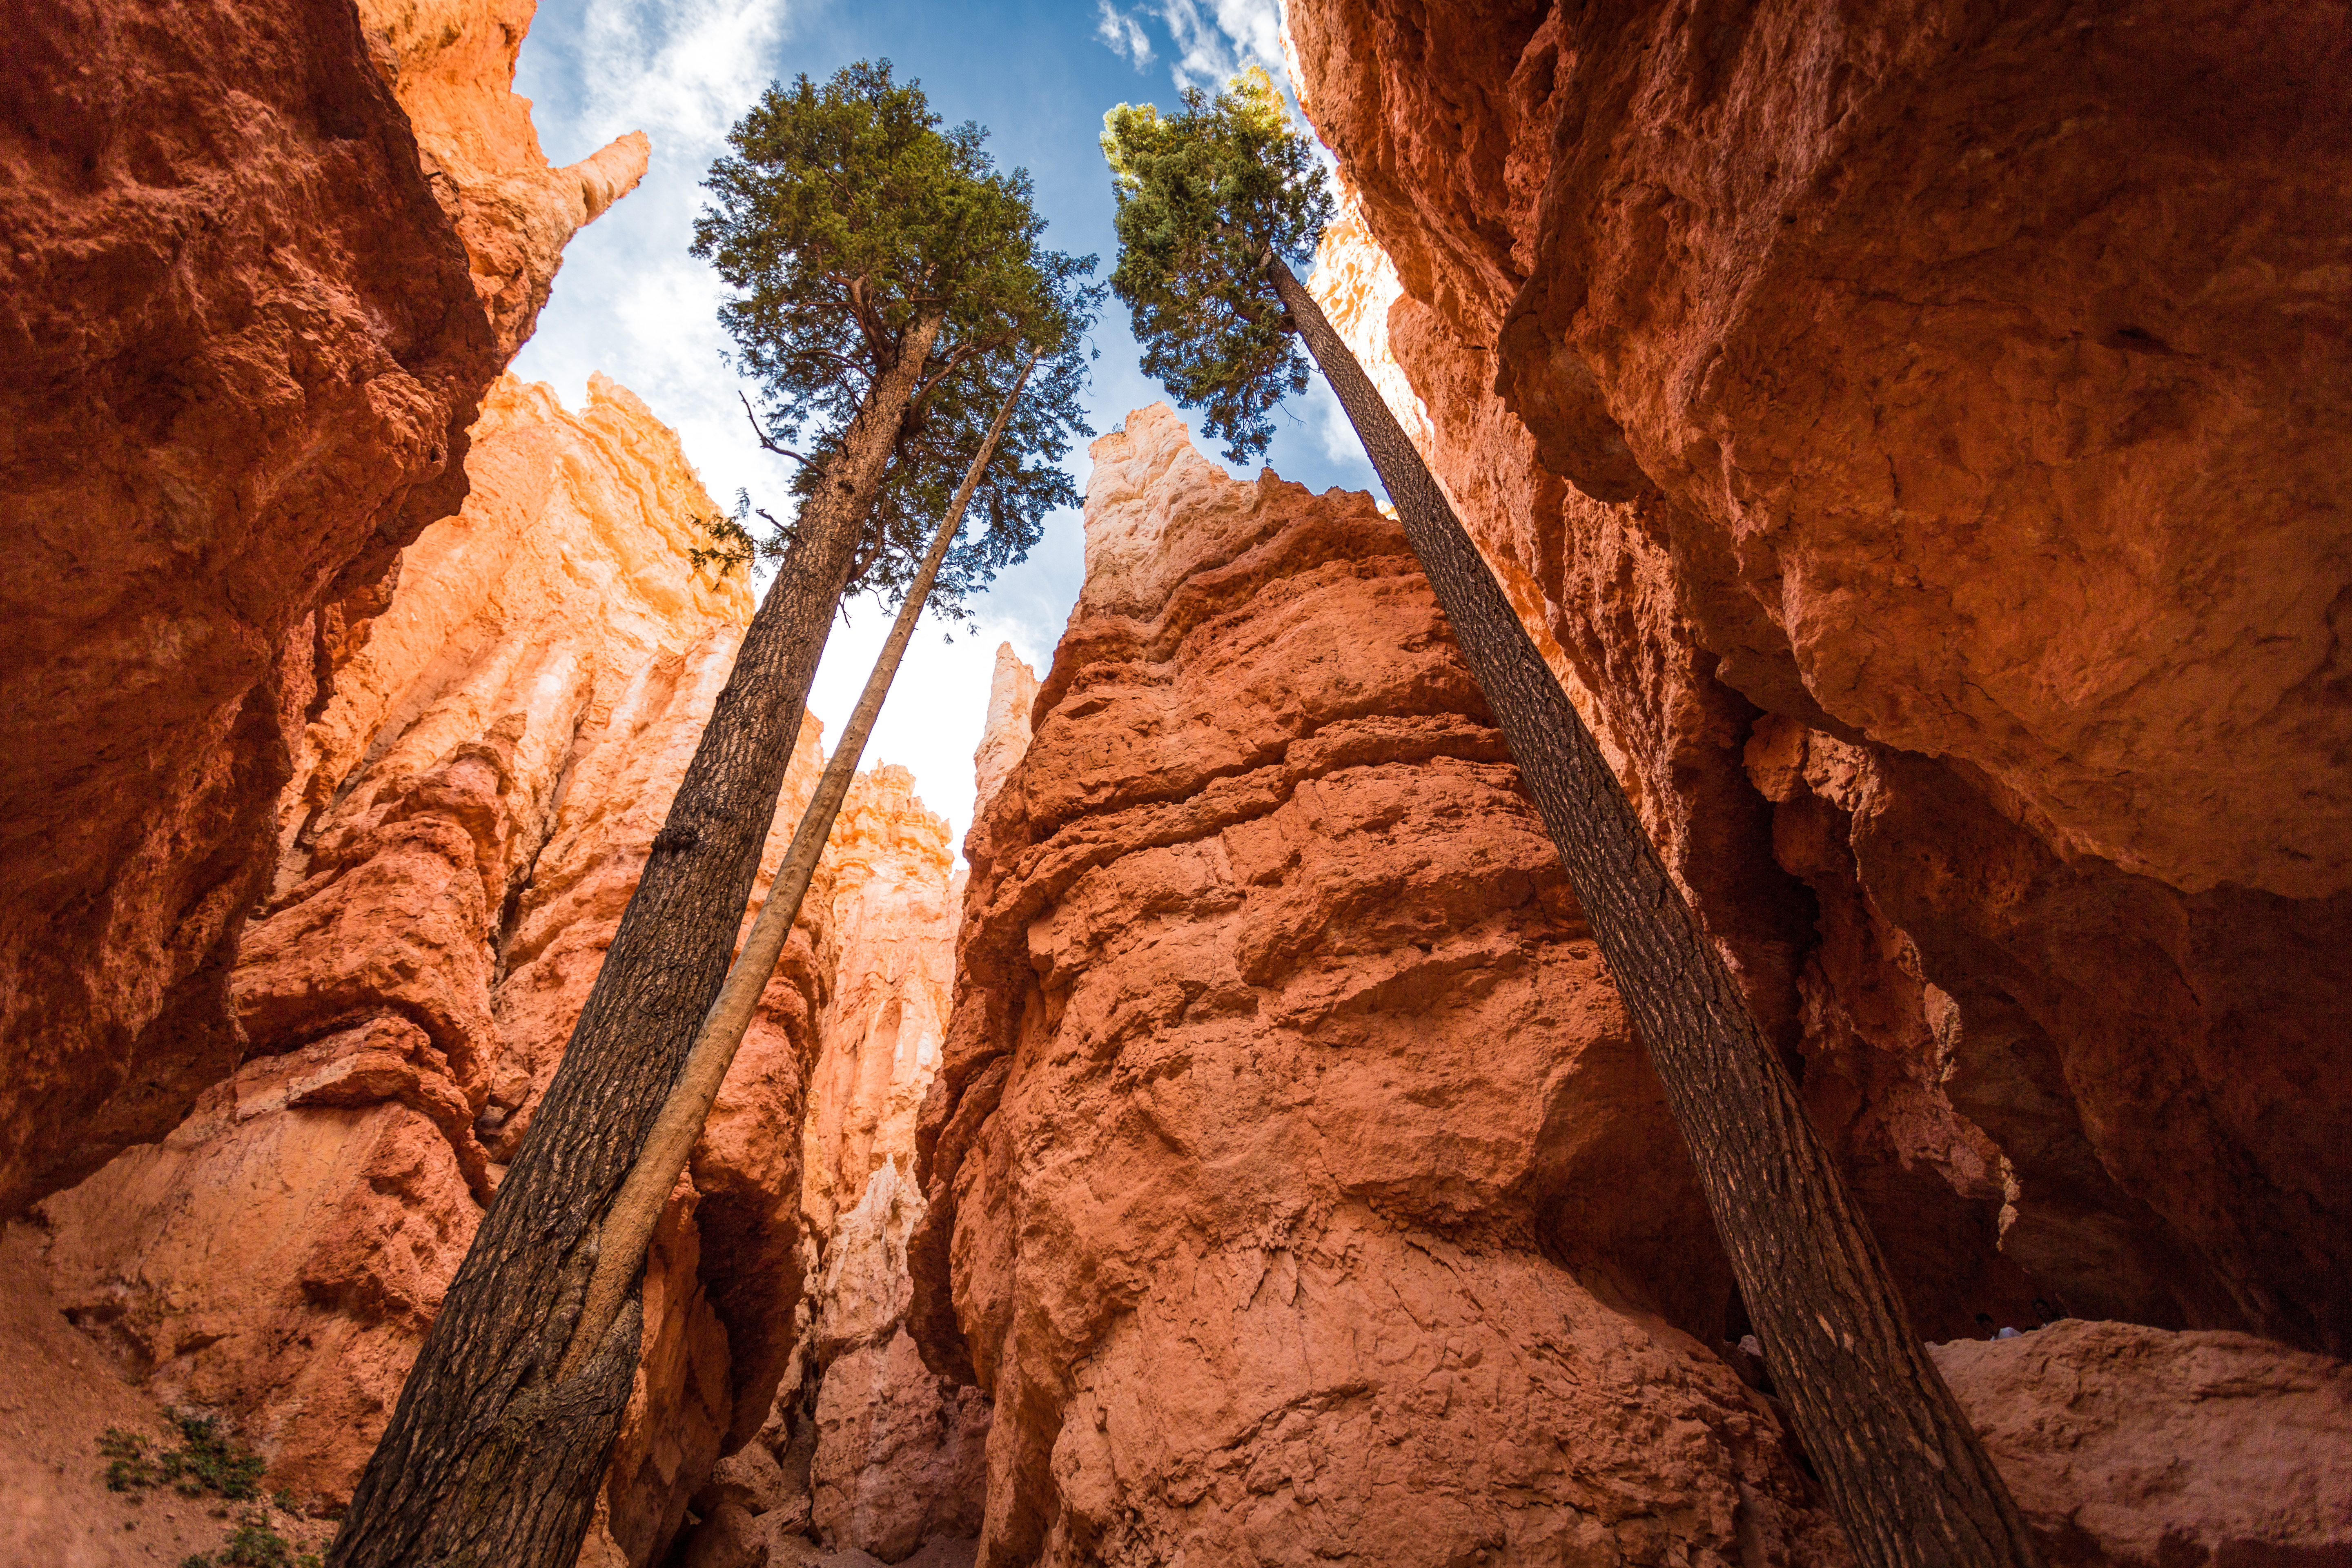 zion national park hiking map with Weather on Stock Photo Relaxing Hiker Woman Resting Feet River Hiking Happy Serene Relaxed Afterhiking Zion National Park Female Zion Canyon Image44158443 further 893066 likewise 7762516988 further K5A3 Zion National Park Washington County Utah likewise Snow Canyon State Park.